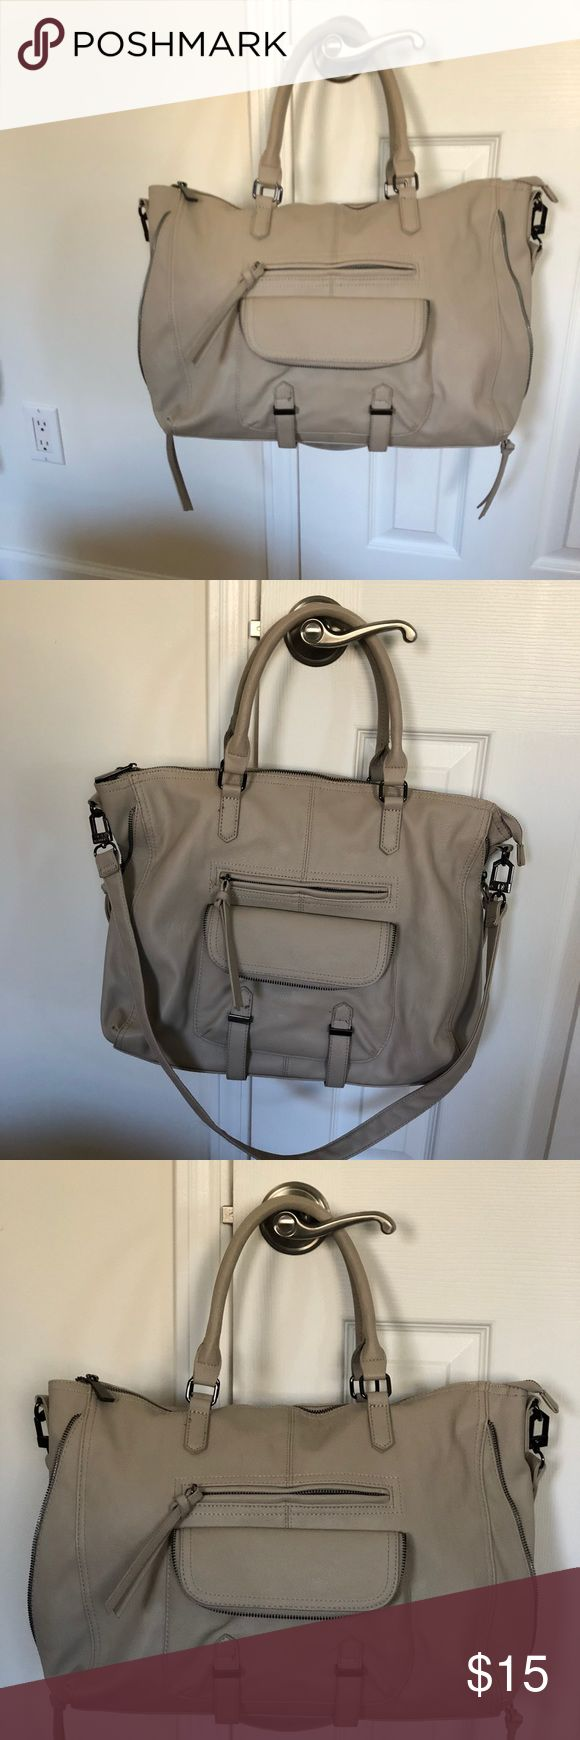 Steve Madden handbag. This is a Steve Madden bag in griege color. It's a combination of grey and beige. This bag holds a ton of stuff and comes with a detachable strap to wear it crossbody. This bag is in excellent used condition. Comes from a smoke free and pet free home. Steve Madden Bags Satchels